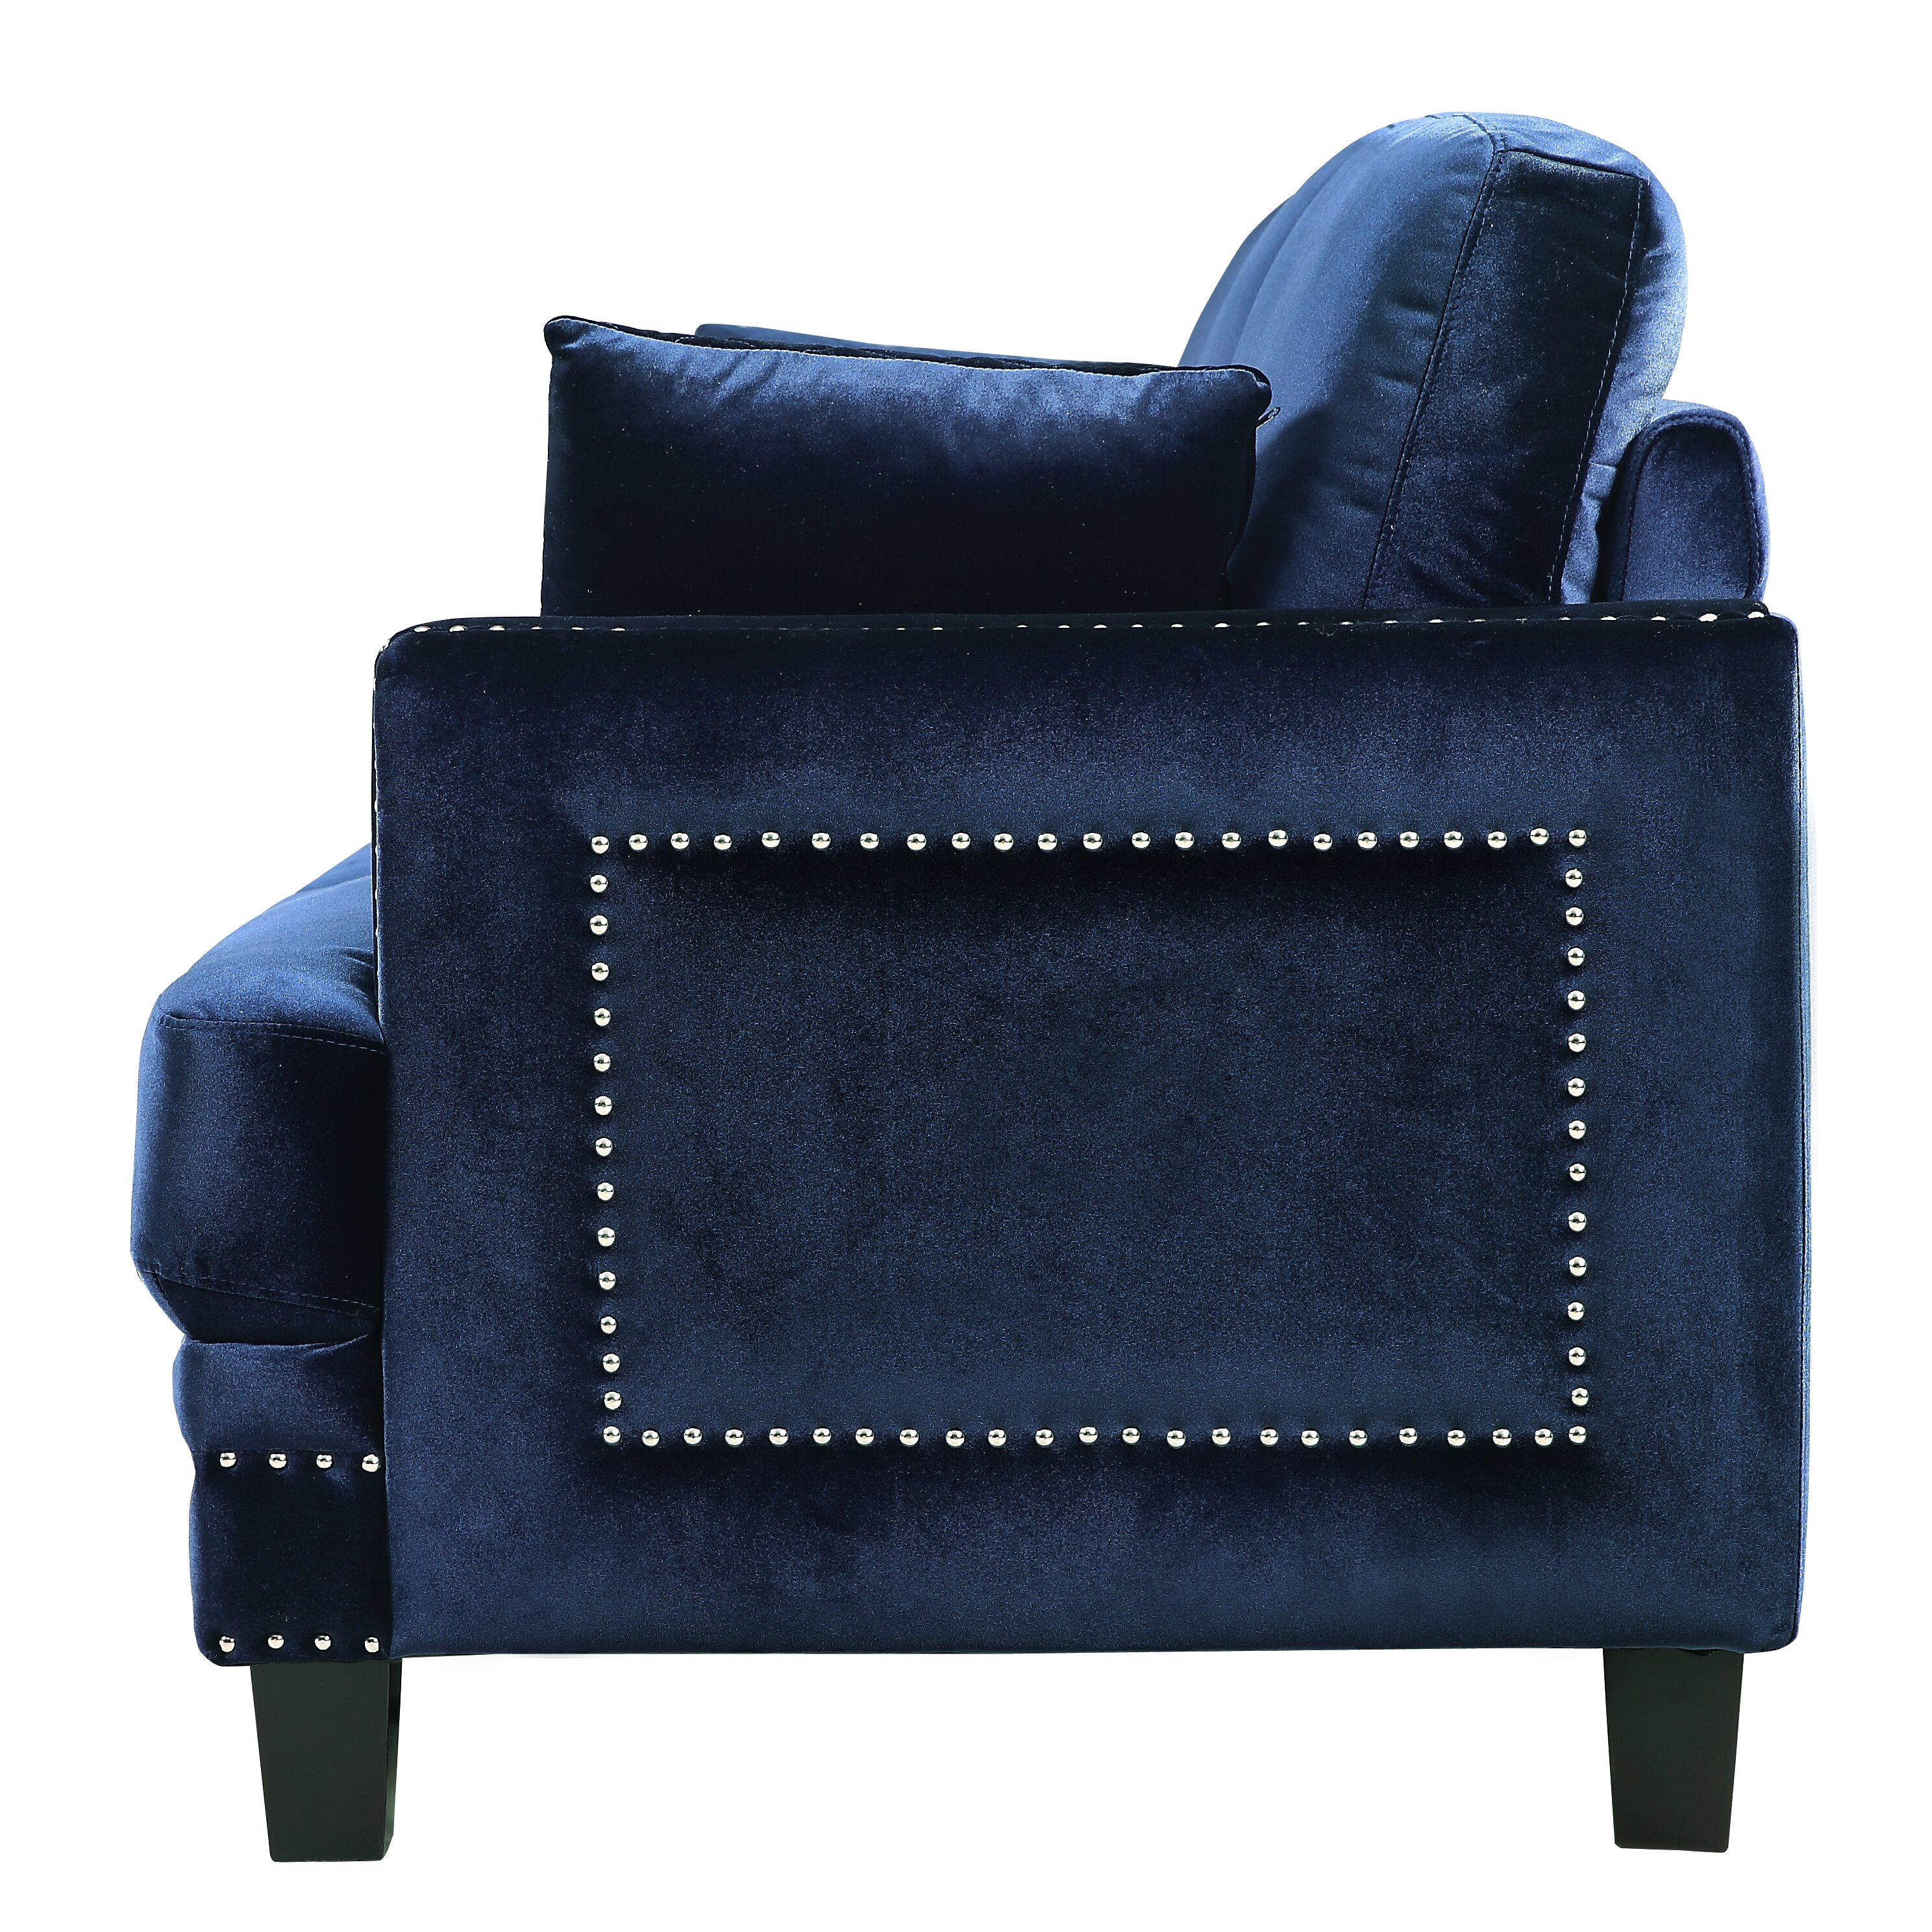 Meridian Furniture USA Ferrara Nailhead Sofa Reviews